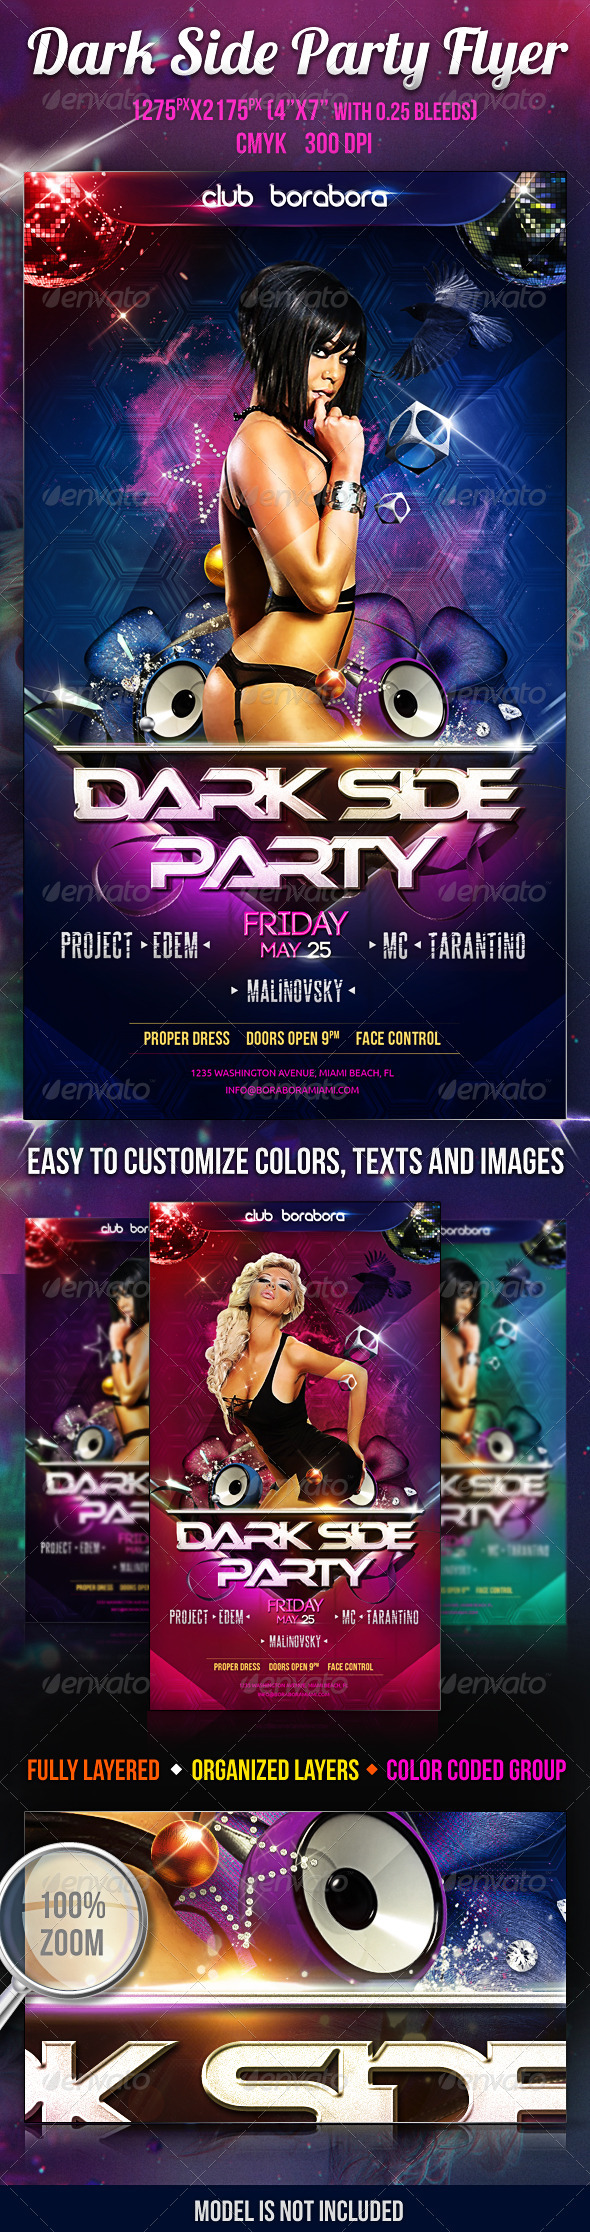 Dark Side Party Flyer PSD Template - Flyers Print Templates